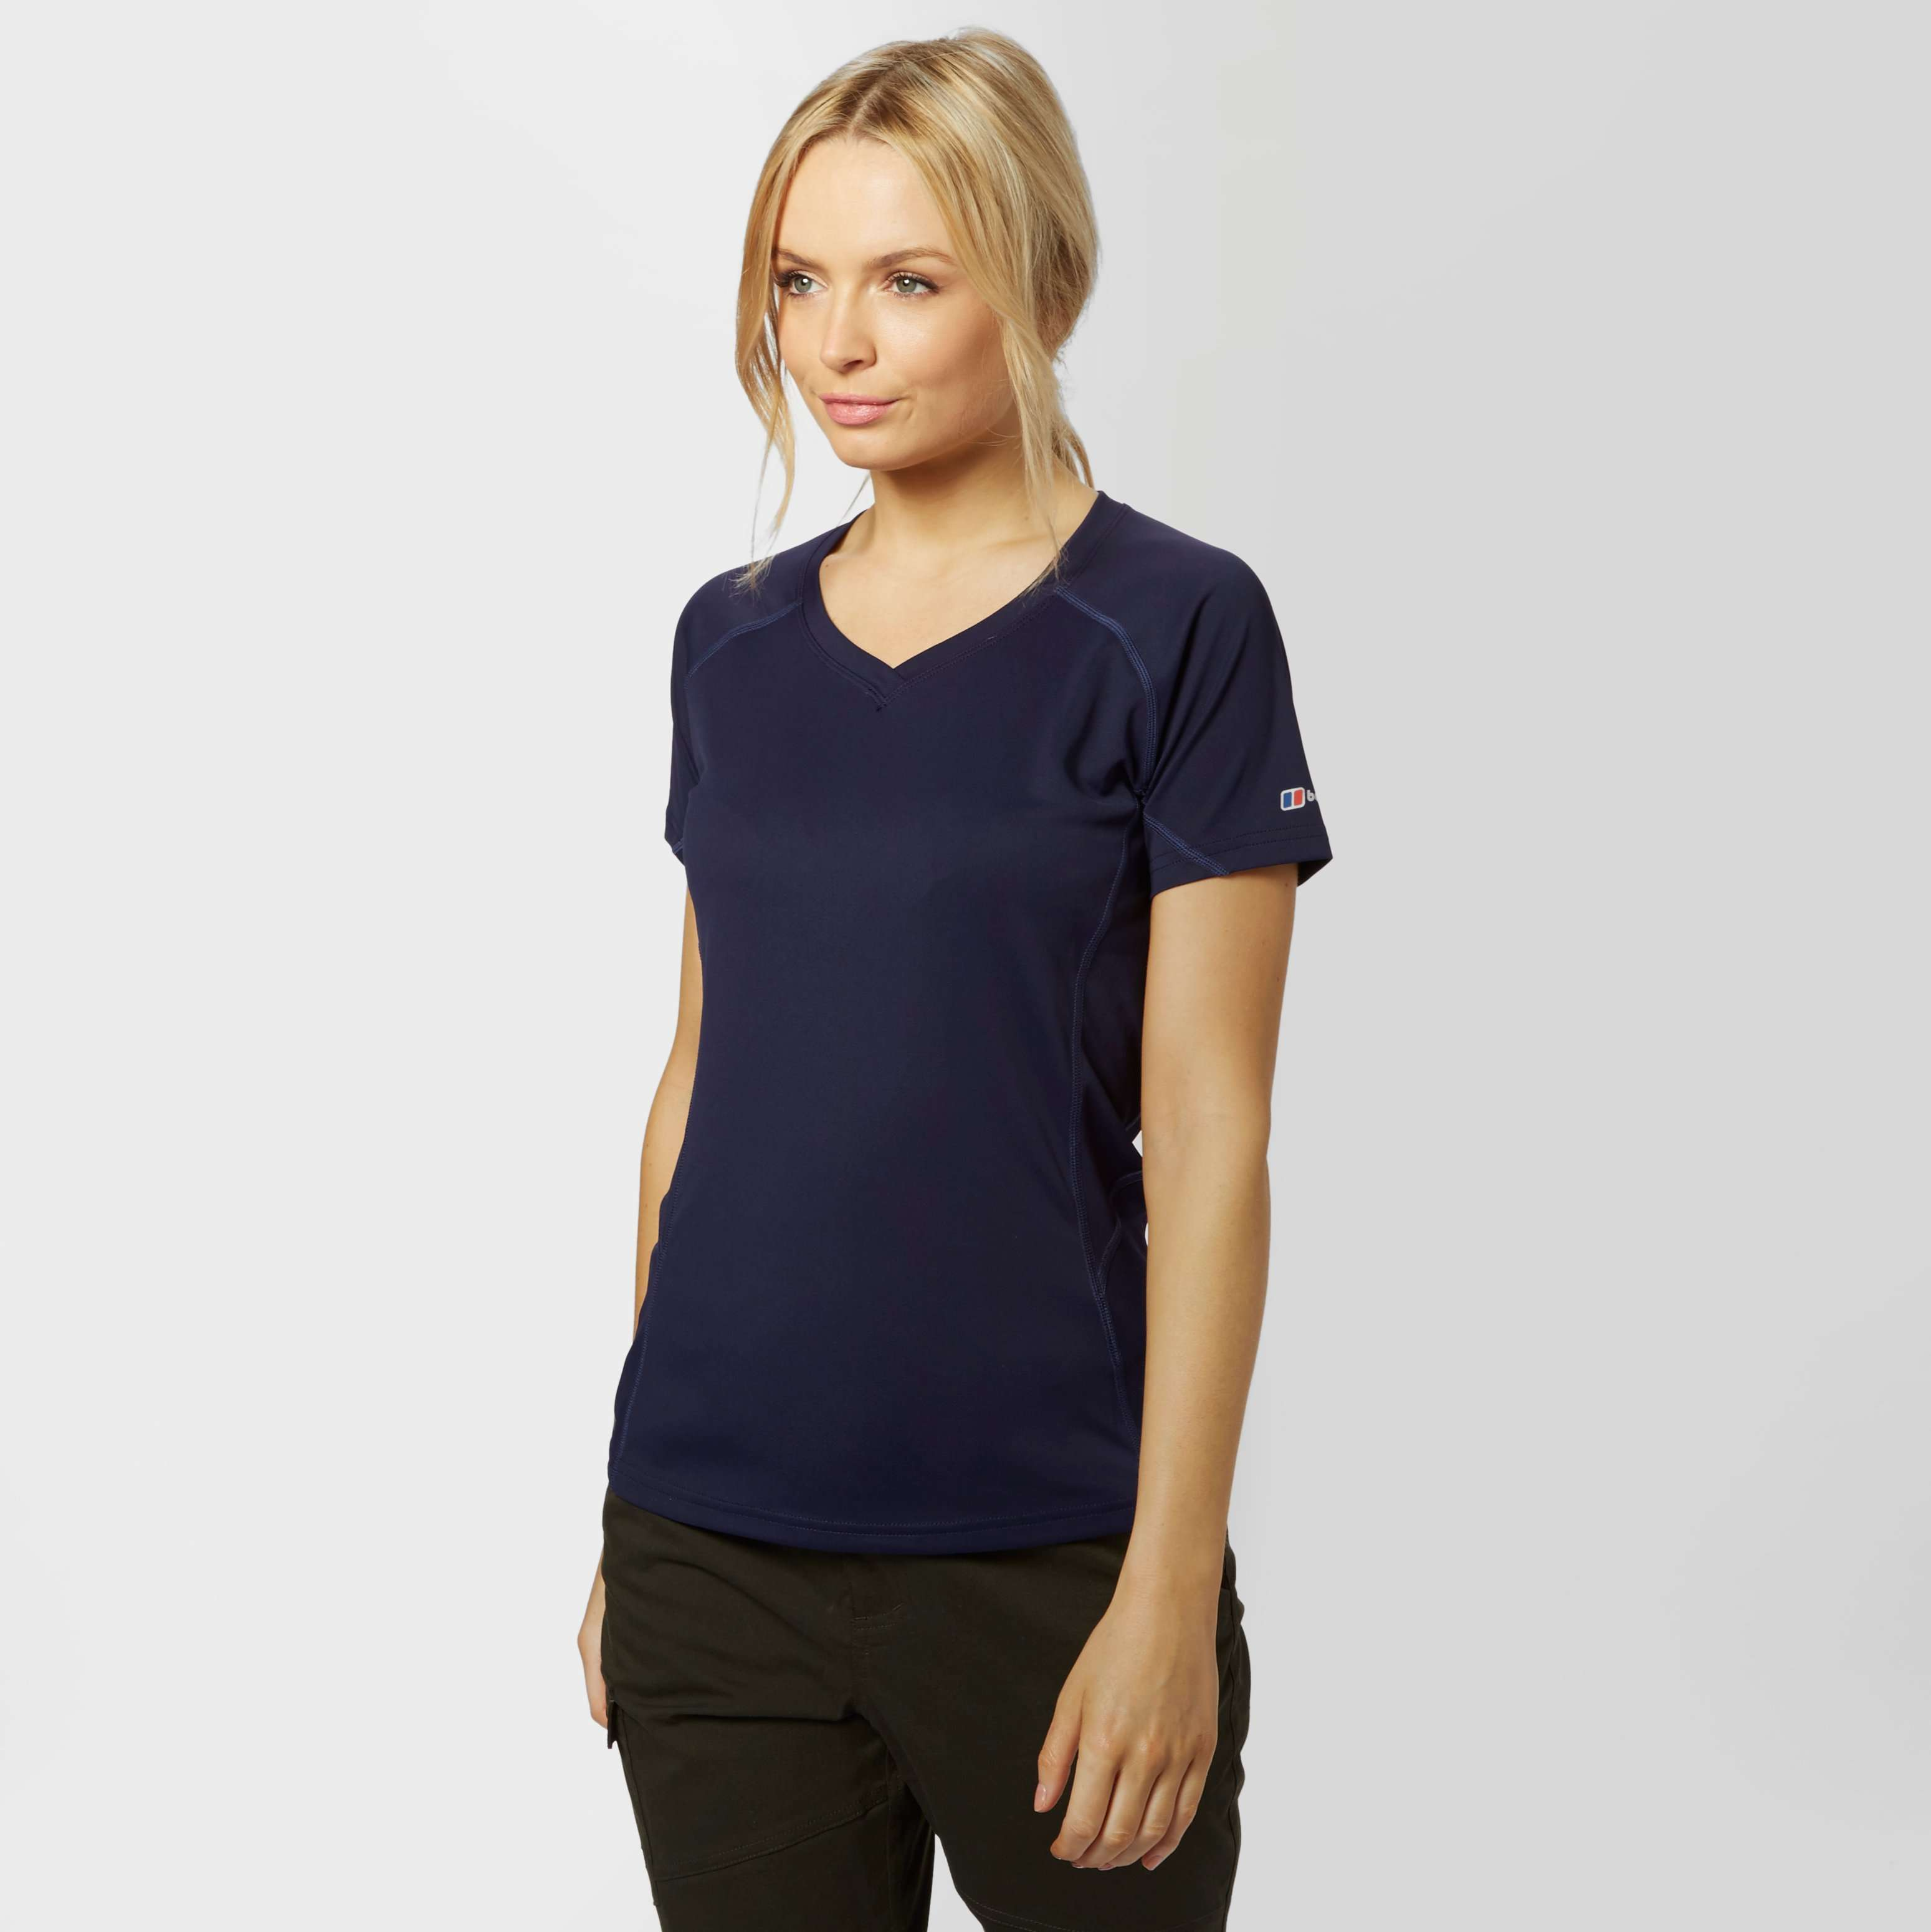 BERGHAUS Women's V-Neck Tech T-Shirt